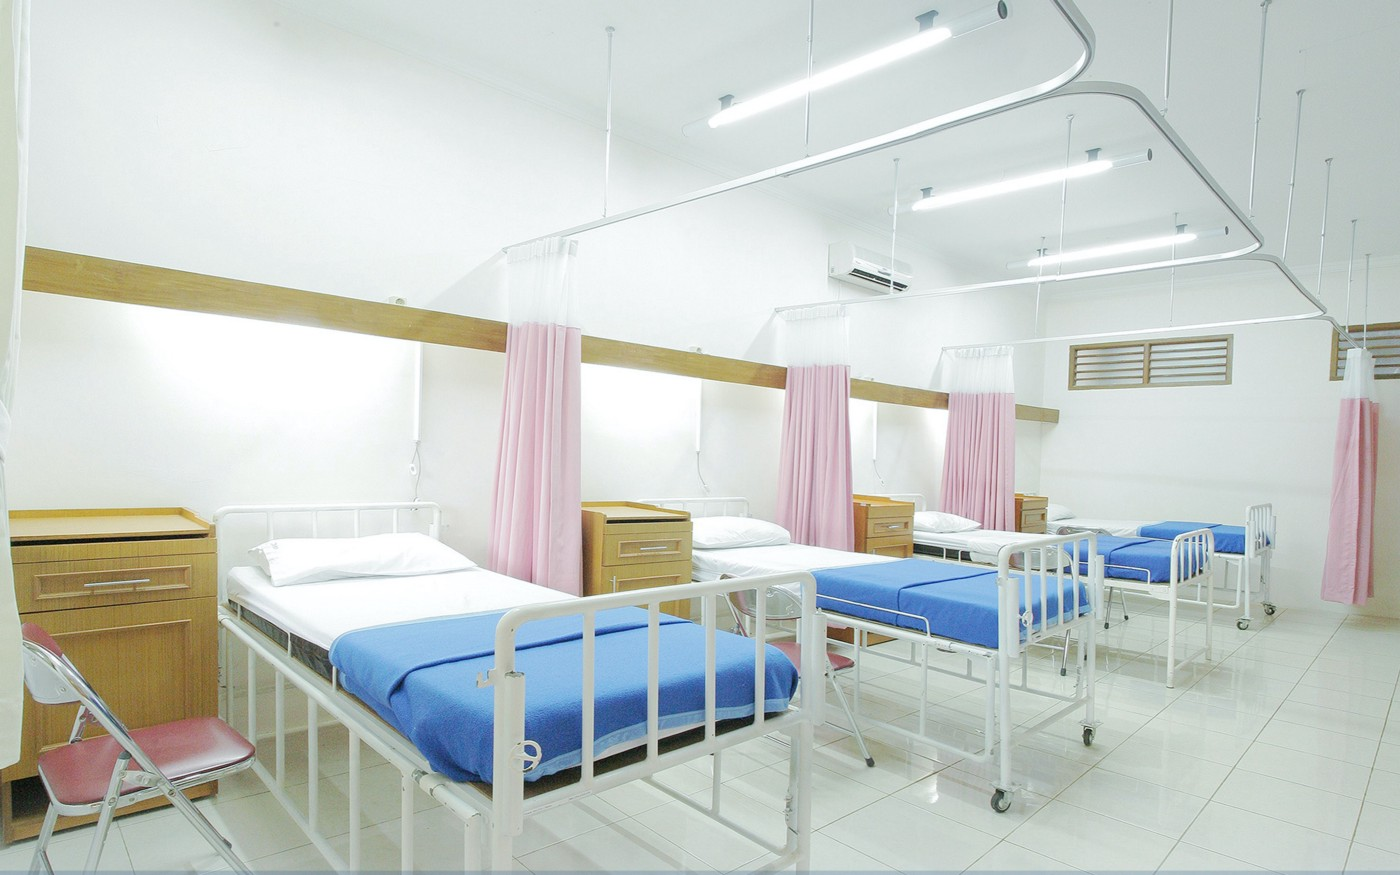 Three hospital beds sit in a row surrounded by bright lights and white wallpaper.